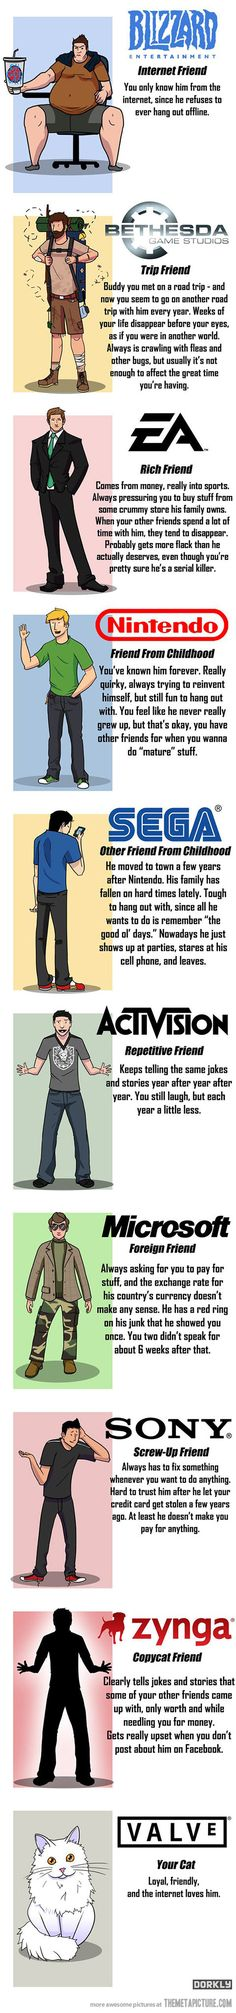 funny-gamer-friend-games-brands